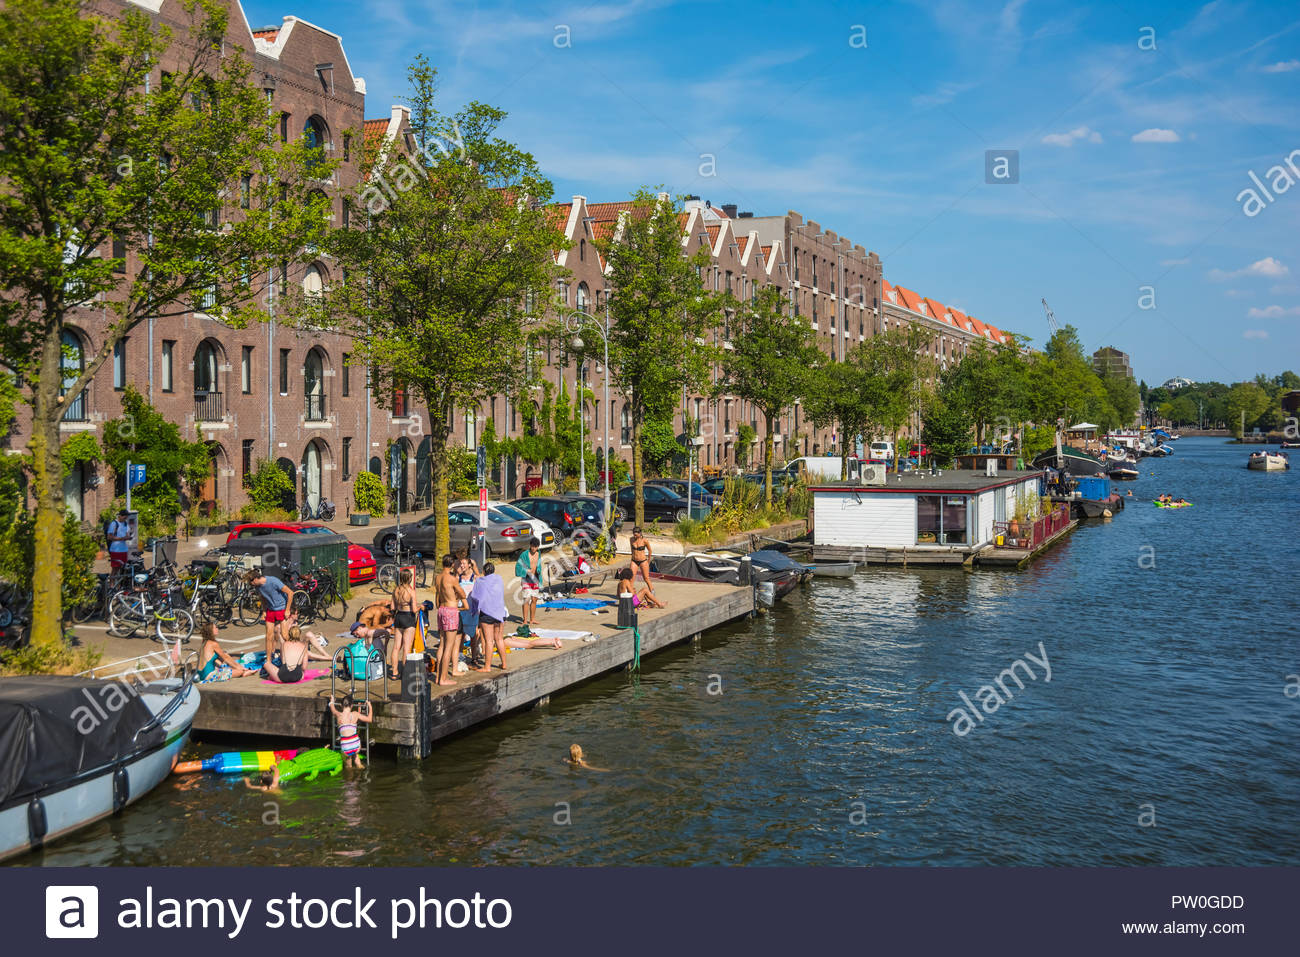 Amsterdam, Badende an einer Gracht, Bathing in a Gracht - Stock Image